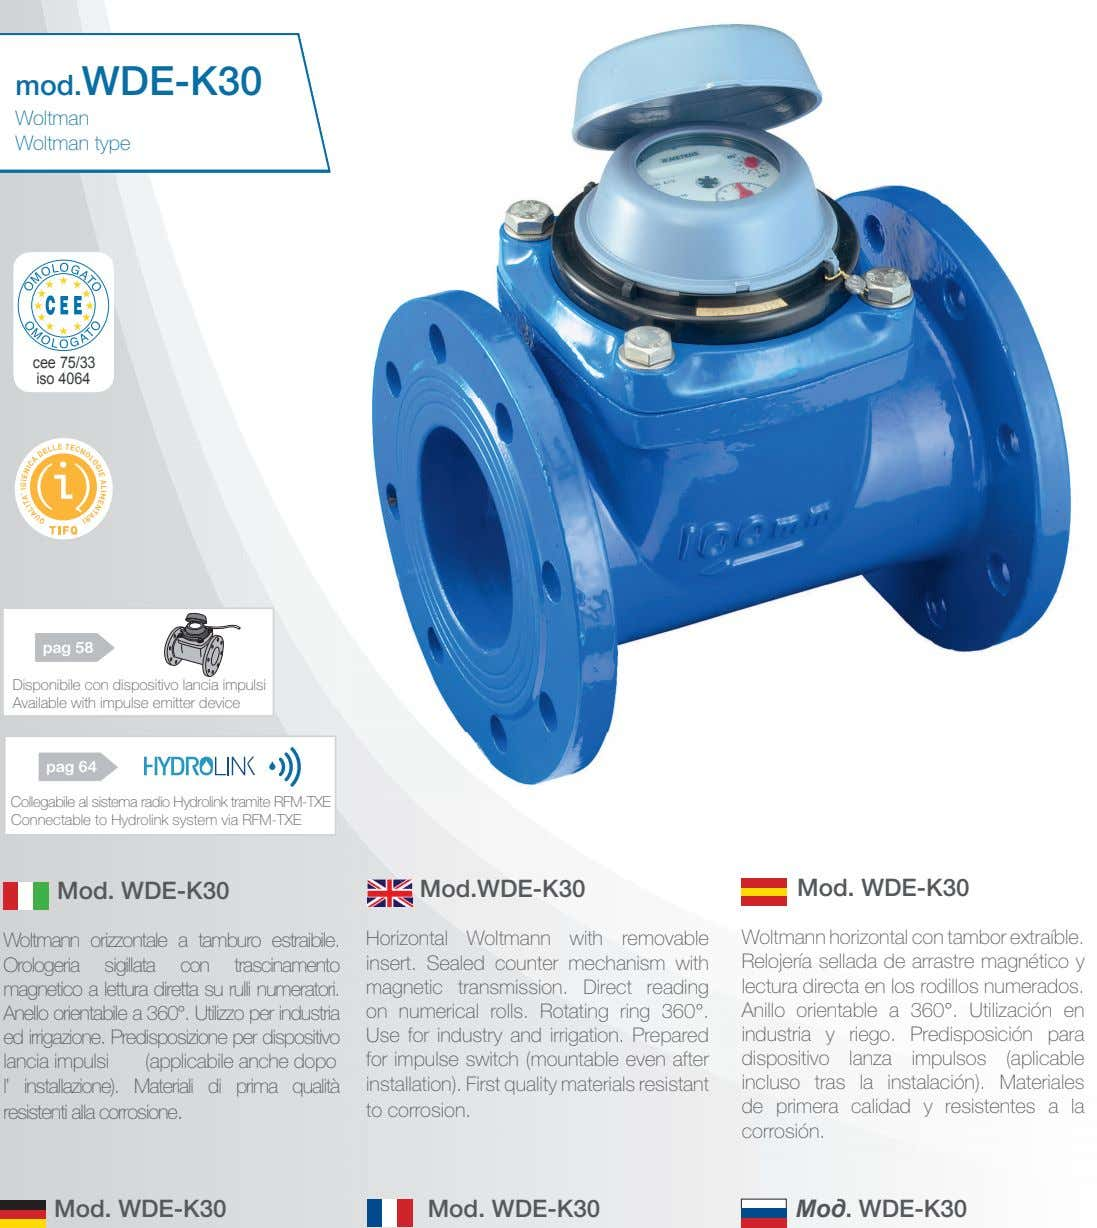 mod.WDE-K30 mod.WDE-K30 Woltman Woltman Woltman Woltman type type cee 75/33 iso 4064 pag 58 Disponibile